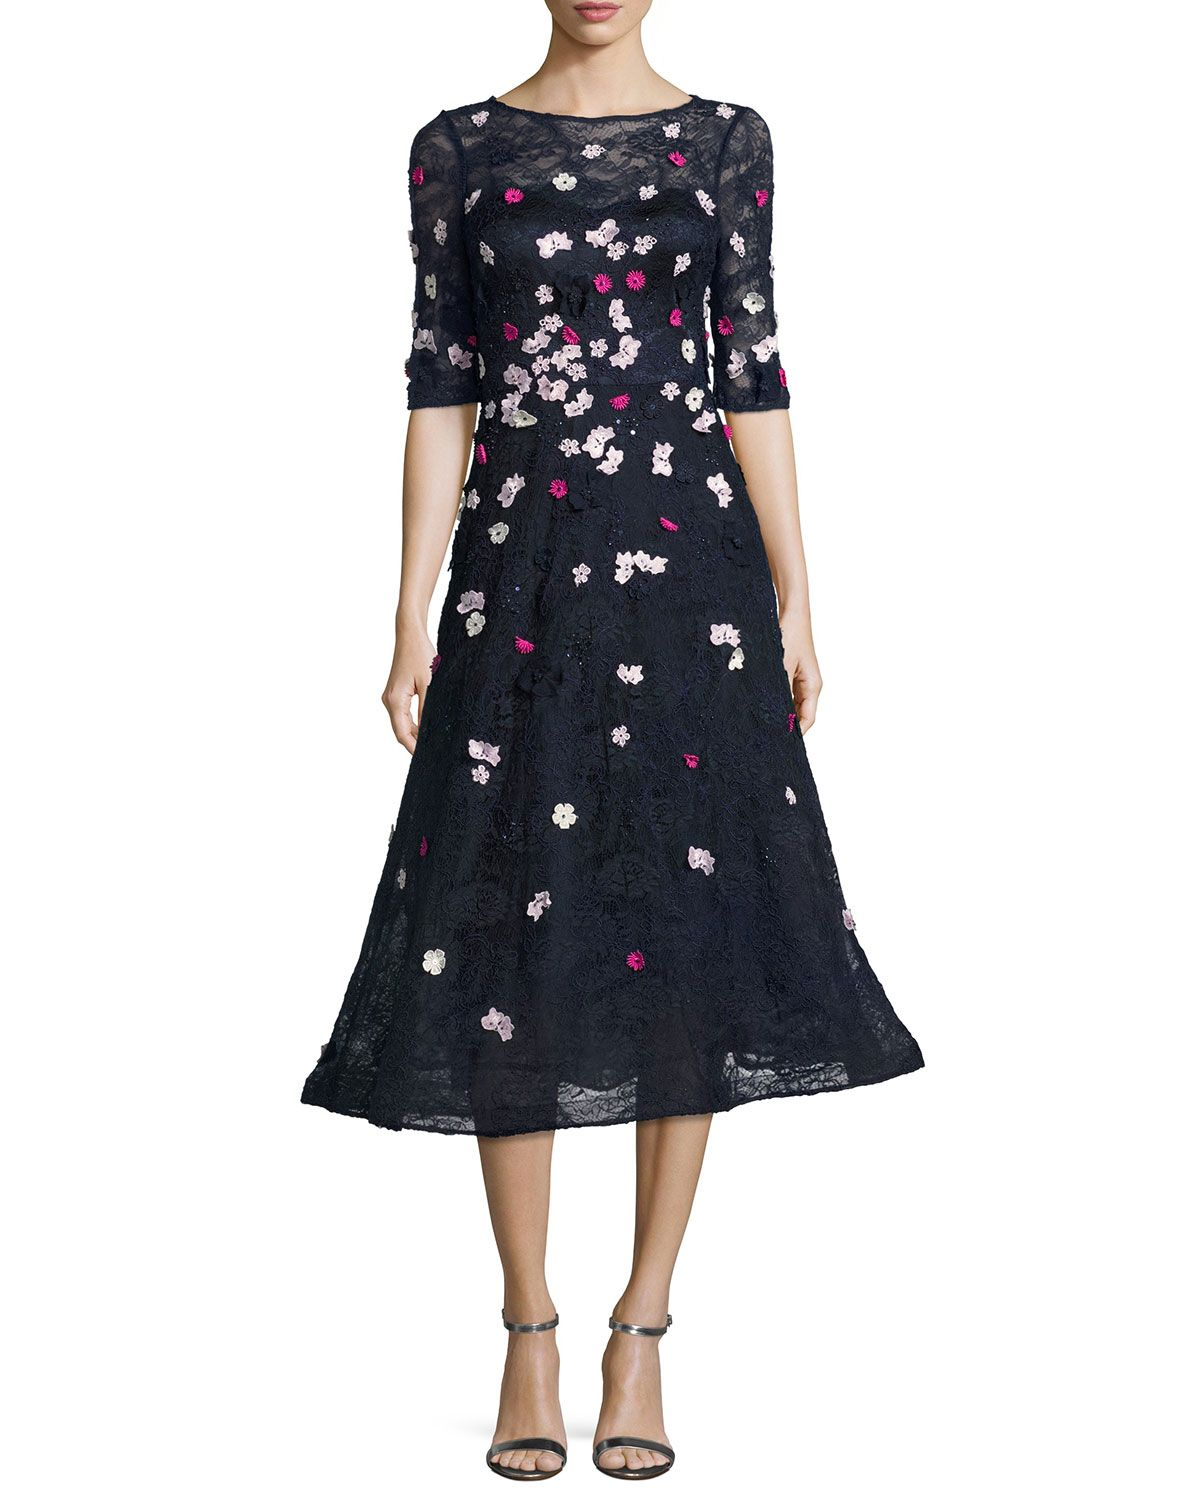 Rickie Freeman for Teri Jon 3D Floral Lace Fit- -Flare Cocktail Dress a4936d5eb